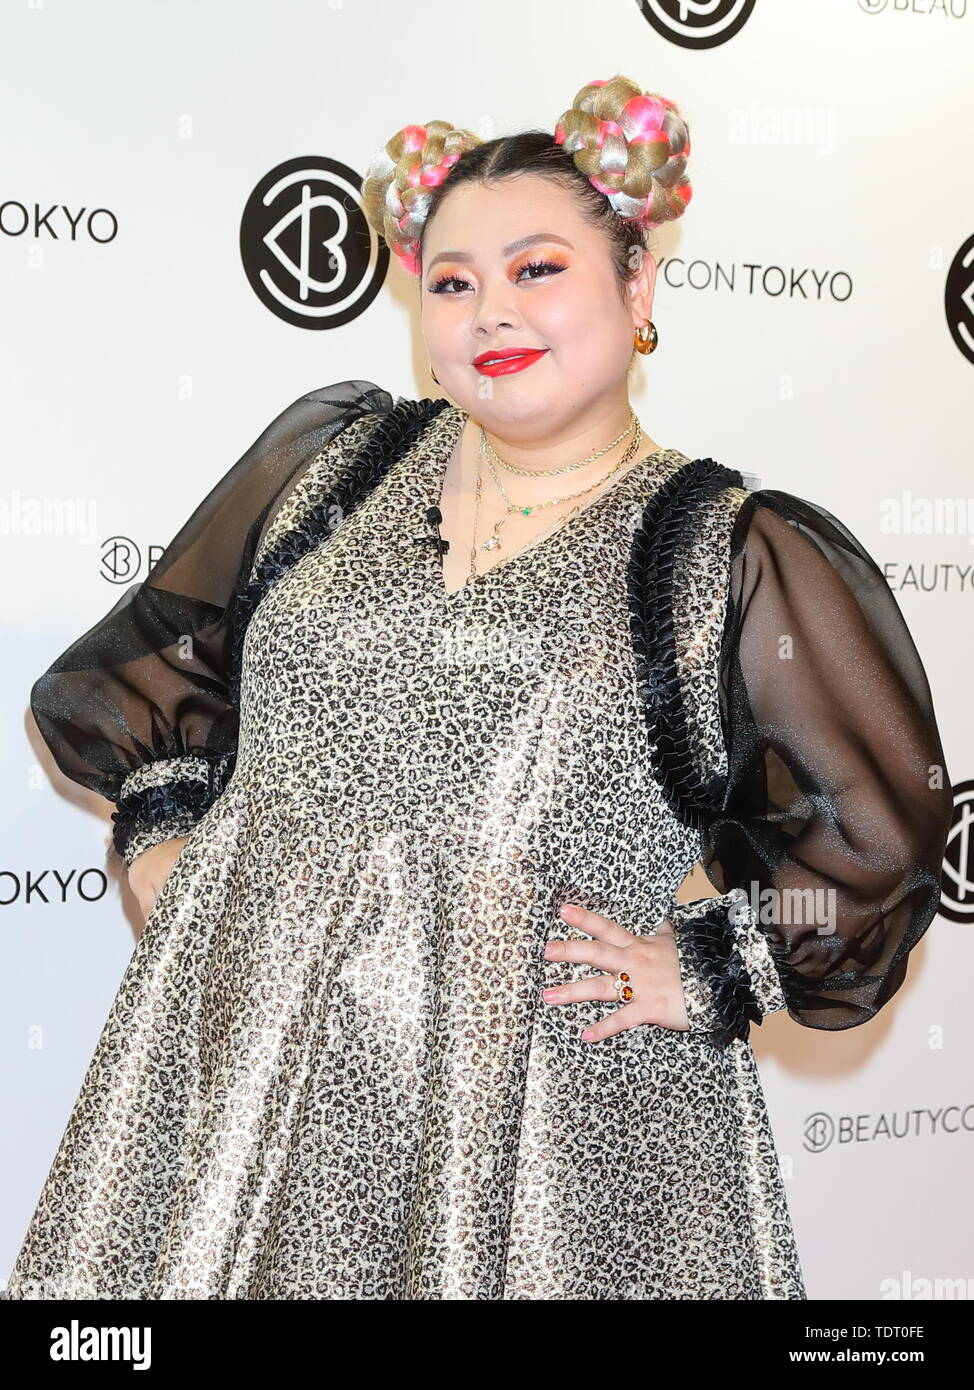 "Japanese comedienne Naomi Watanabe attends ""Beautycon Tokyo"" photocall in Tokyo, Japan on June 15, 2019. Credit: Motoo Naka/AFLO/Alamy Live News Stock Photo"